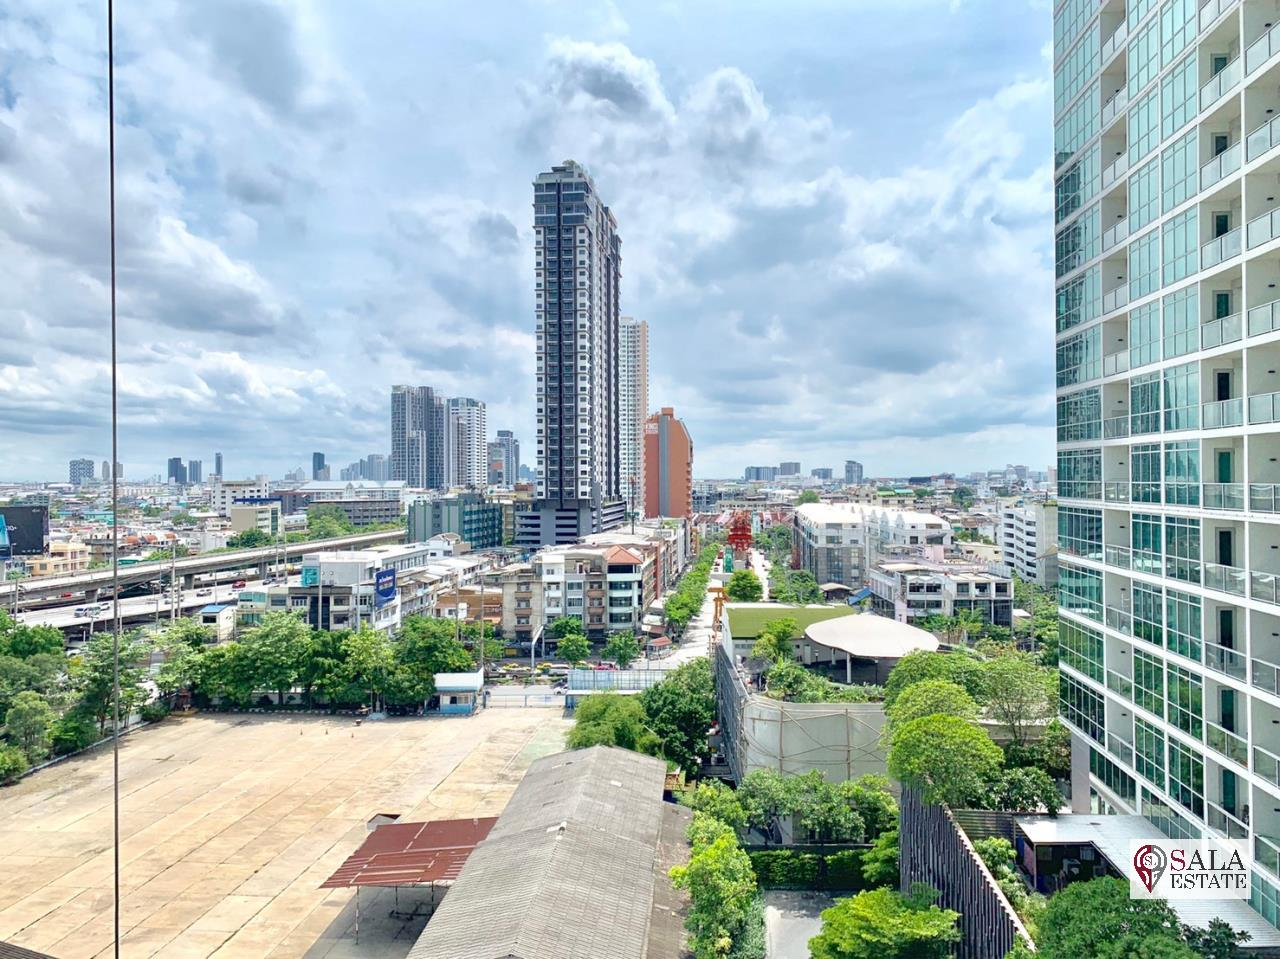 SALA ESTATE Agency's FOR SALE  THE RIVER – RIVERSIDE,ICONSIAM,豪华公寓,河景房, 2卧2卫, 家具齐全 9